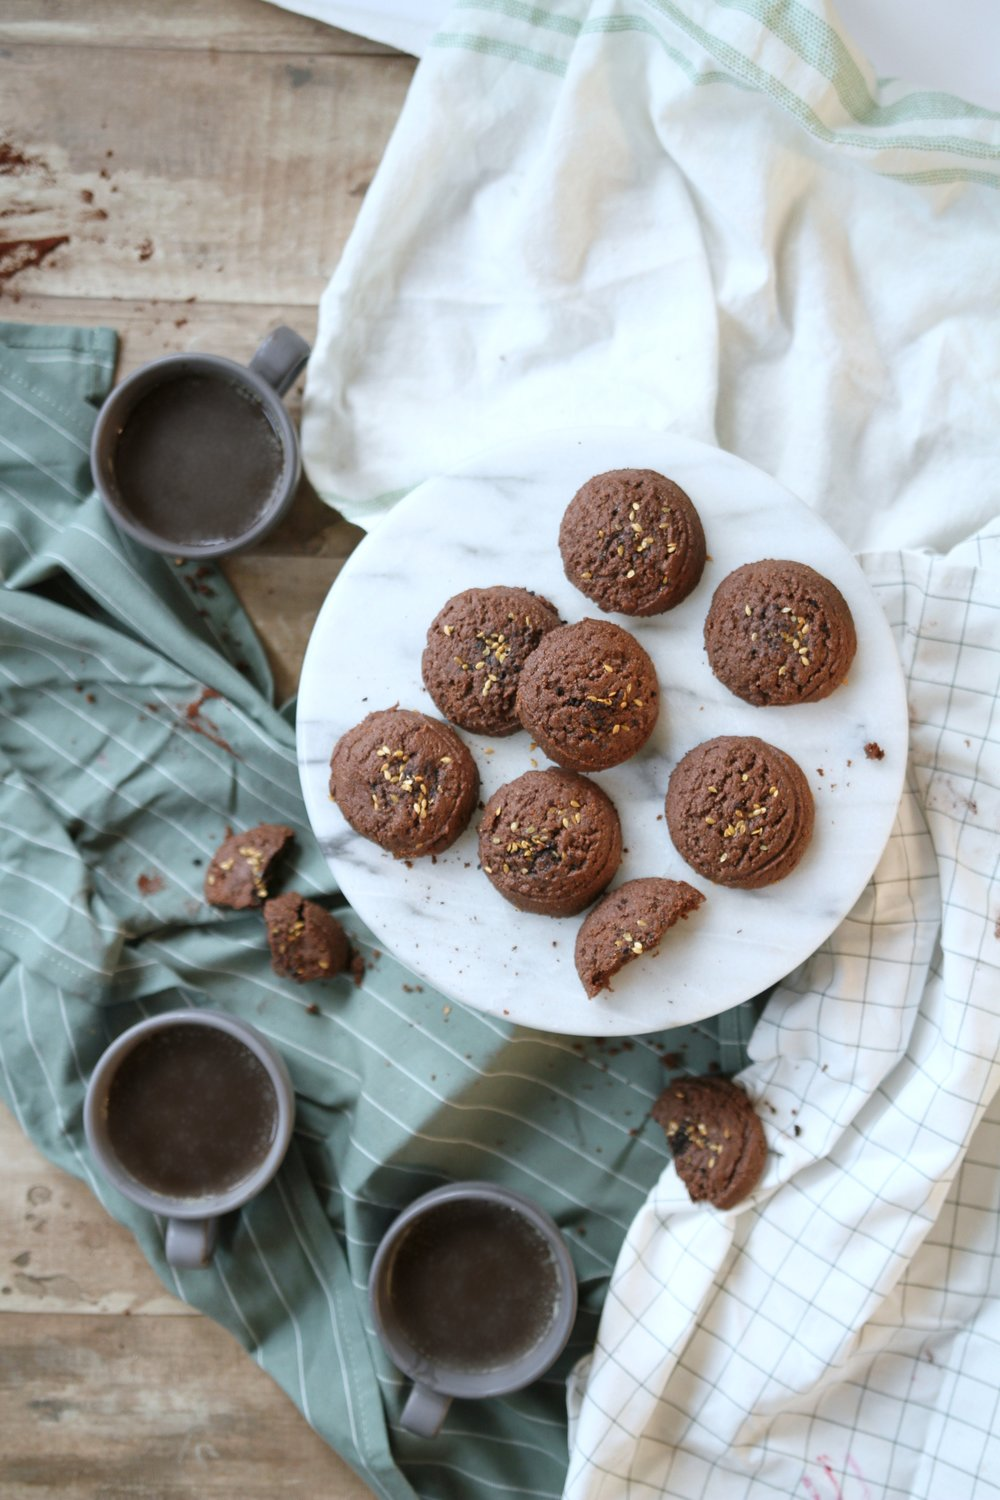 Chocolate Espresso Almond Butter Cookies | Gluten Free, Vegan, Refined Sugar-Free These cookies are mature, the flavor of the creamy chocolate powder and espresso make them decadent and rich. With a crumbly outside and an incredible brownie-like inside, these cookies far from disappoint. Now I don't want you thinking you cant make these cookies for the family, I have had children sneak these cookies they are that good. Being gluten-free, sugar-free and vegan are some of the last things you think about, these cookies are incredible!  The almond butter adds a more than just moisture, but it lightens the whole cookie, to make sure the almond didn't get overpowered I added a little almond extract.